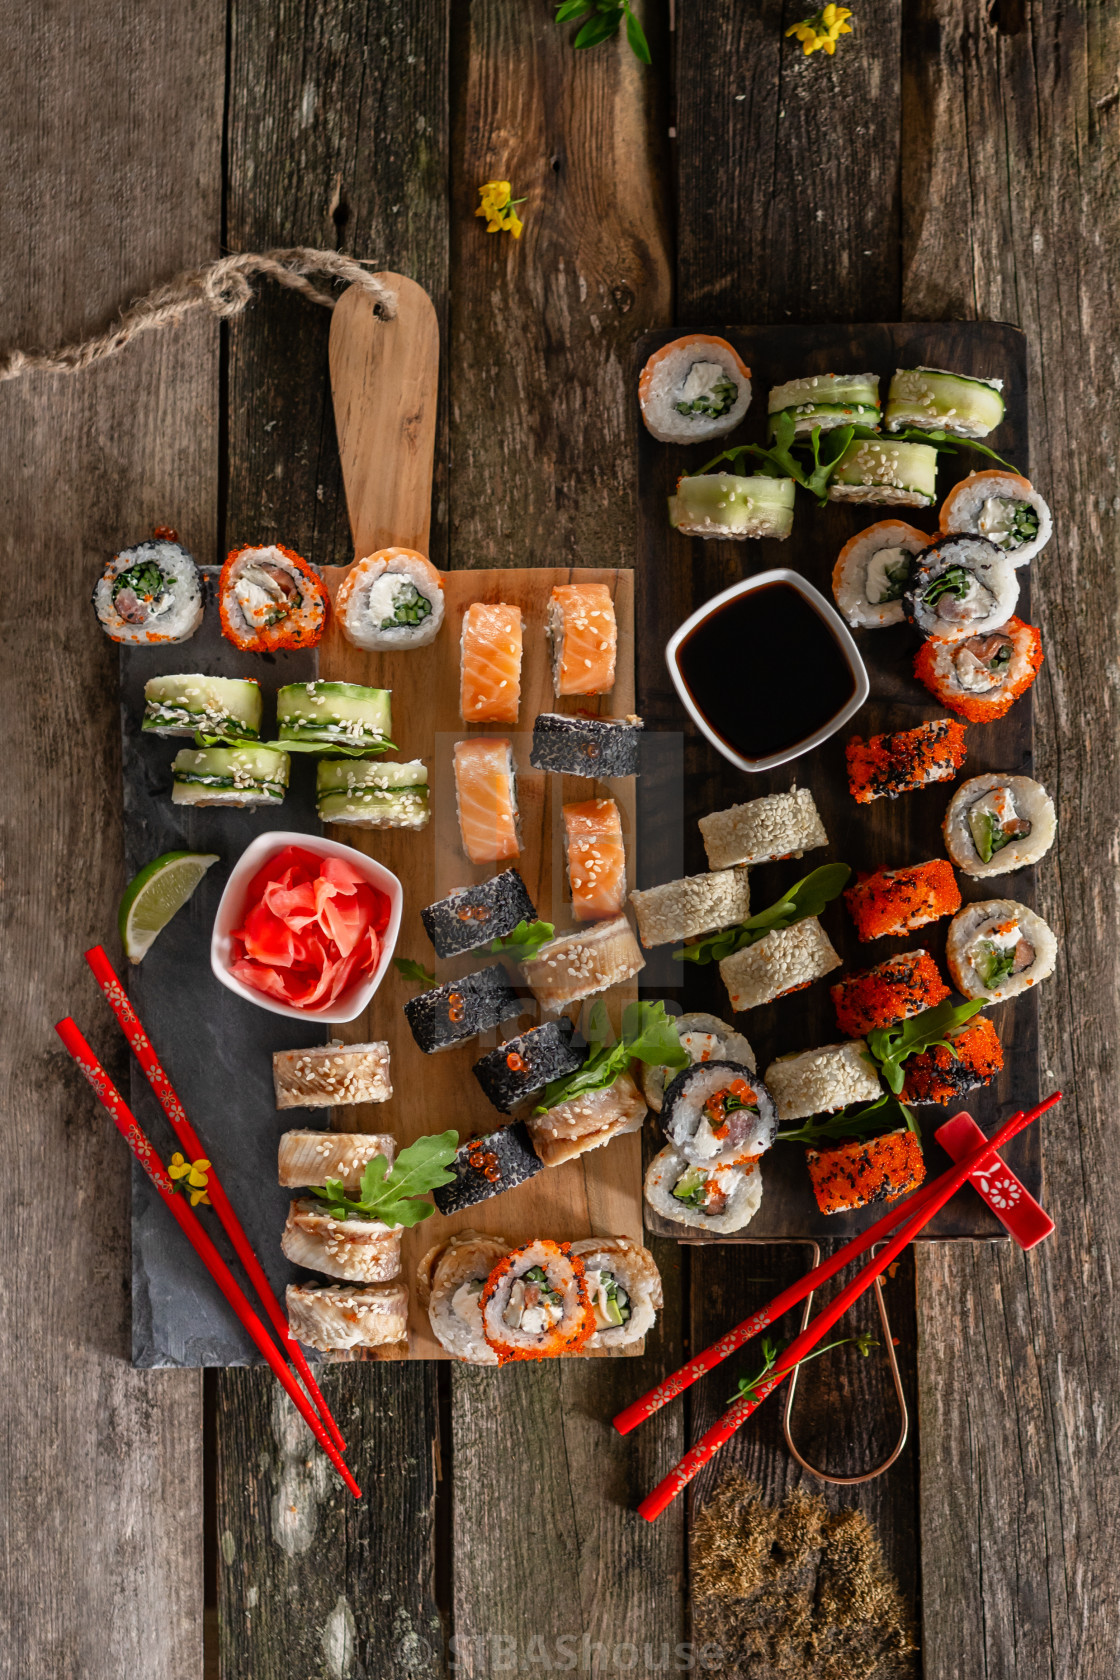 Sushi Set Food Photo Rolls Served On Brown Wooden And Slate Plate Close Up And Top View Of Sushi License Download Or Print For 49 60 Photos Picfair